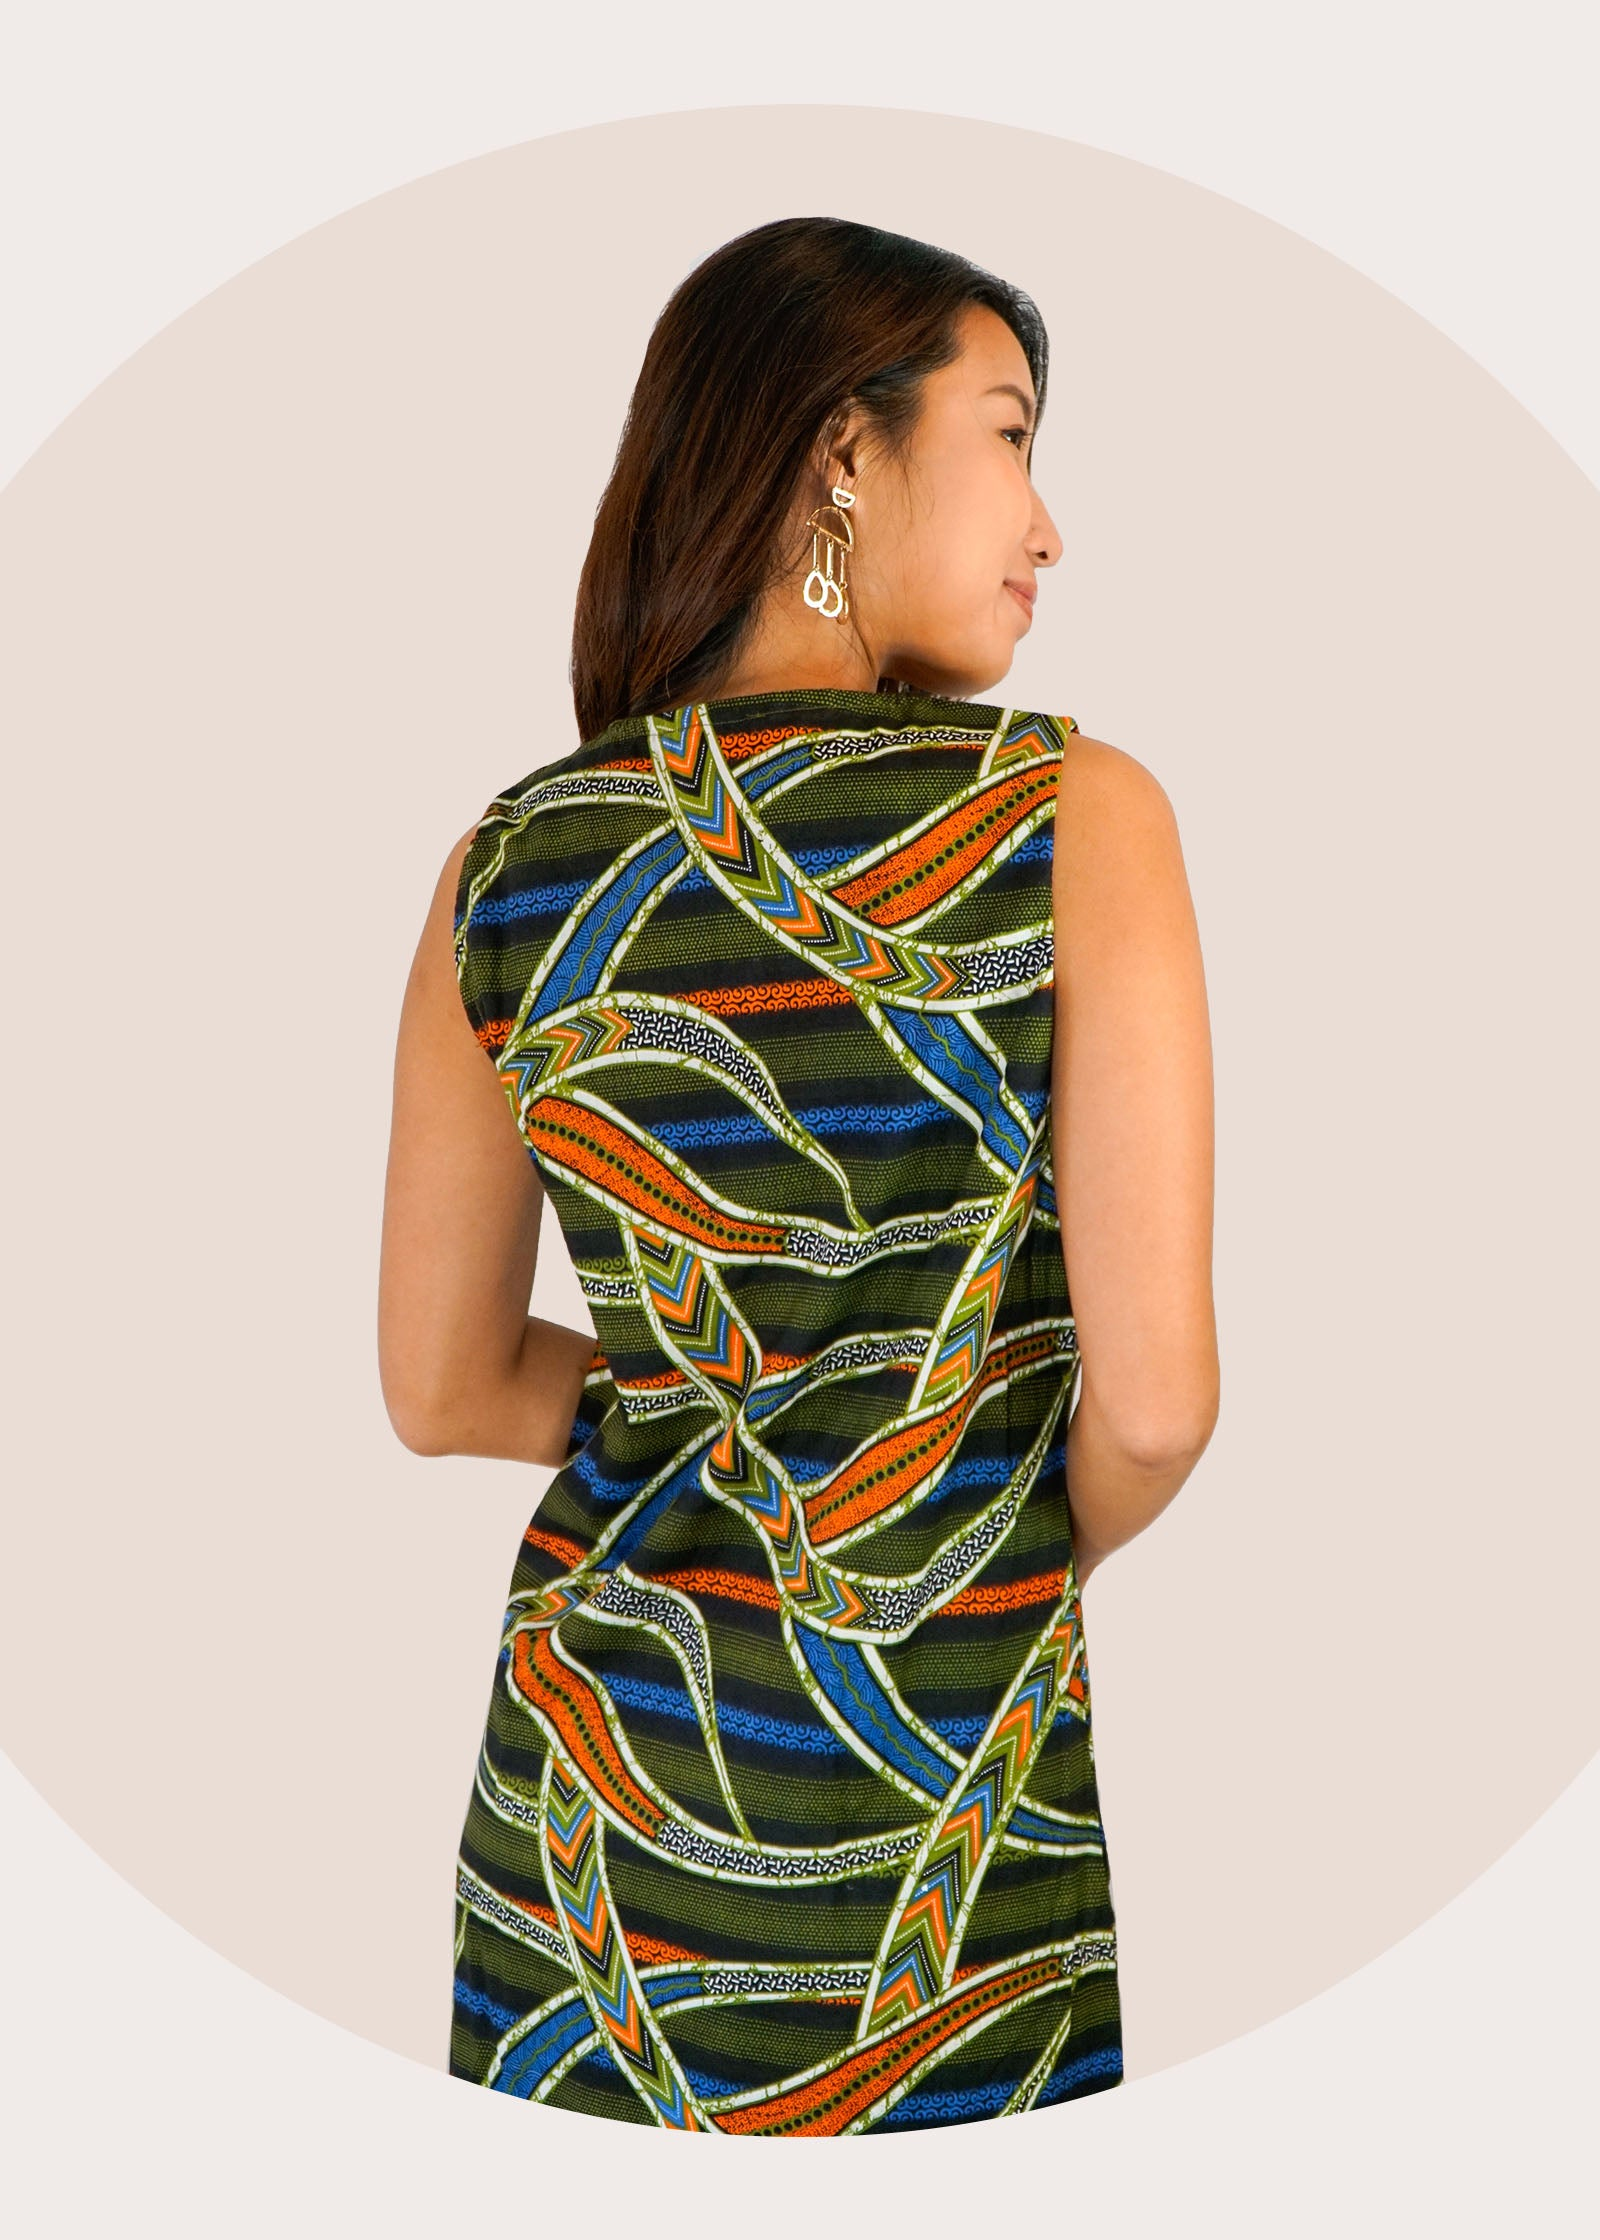 Cindy Ruffle Batik Dress in Slices